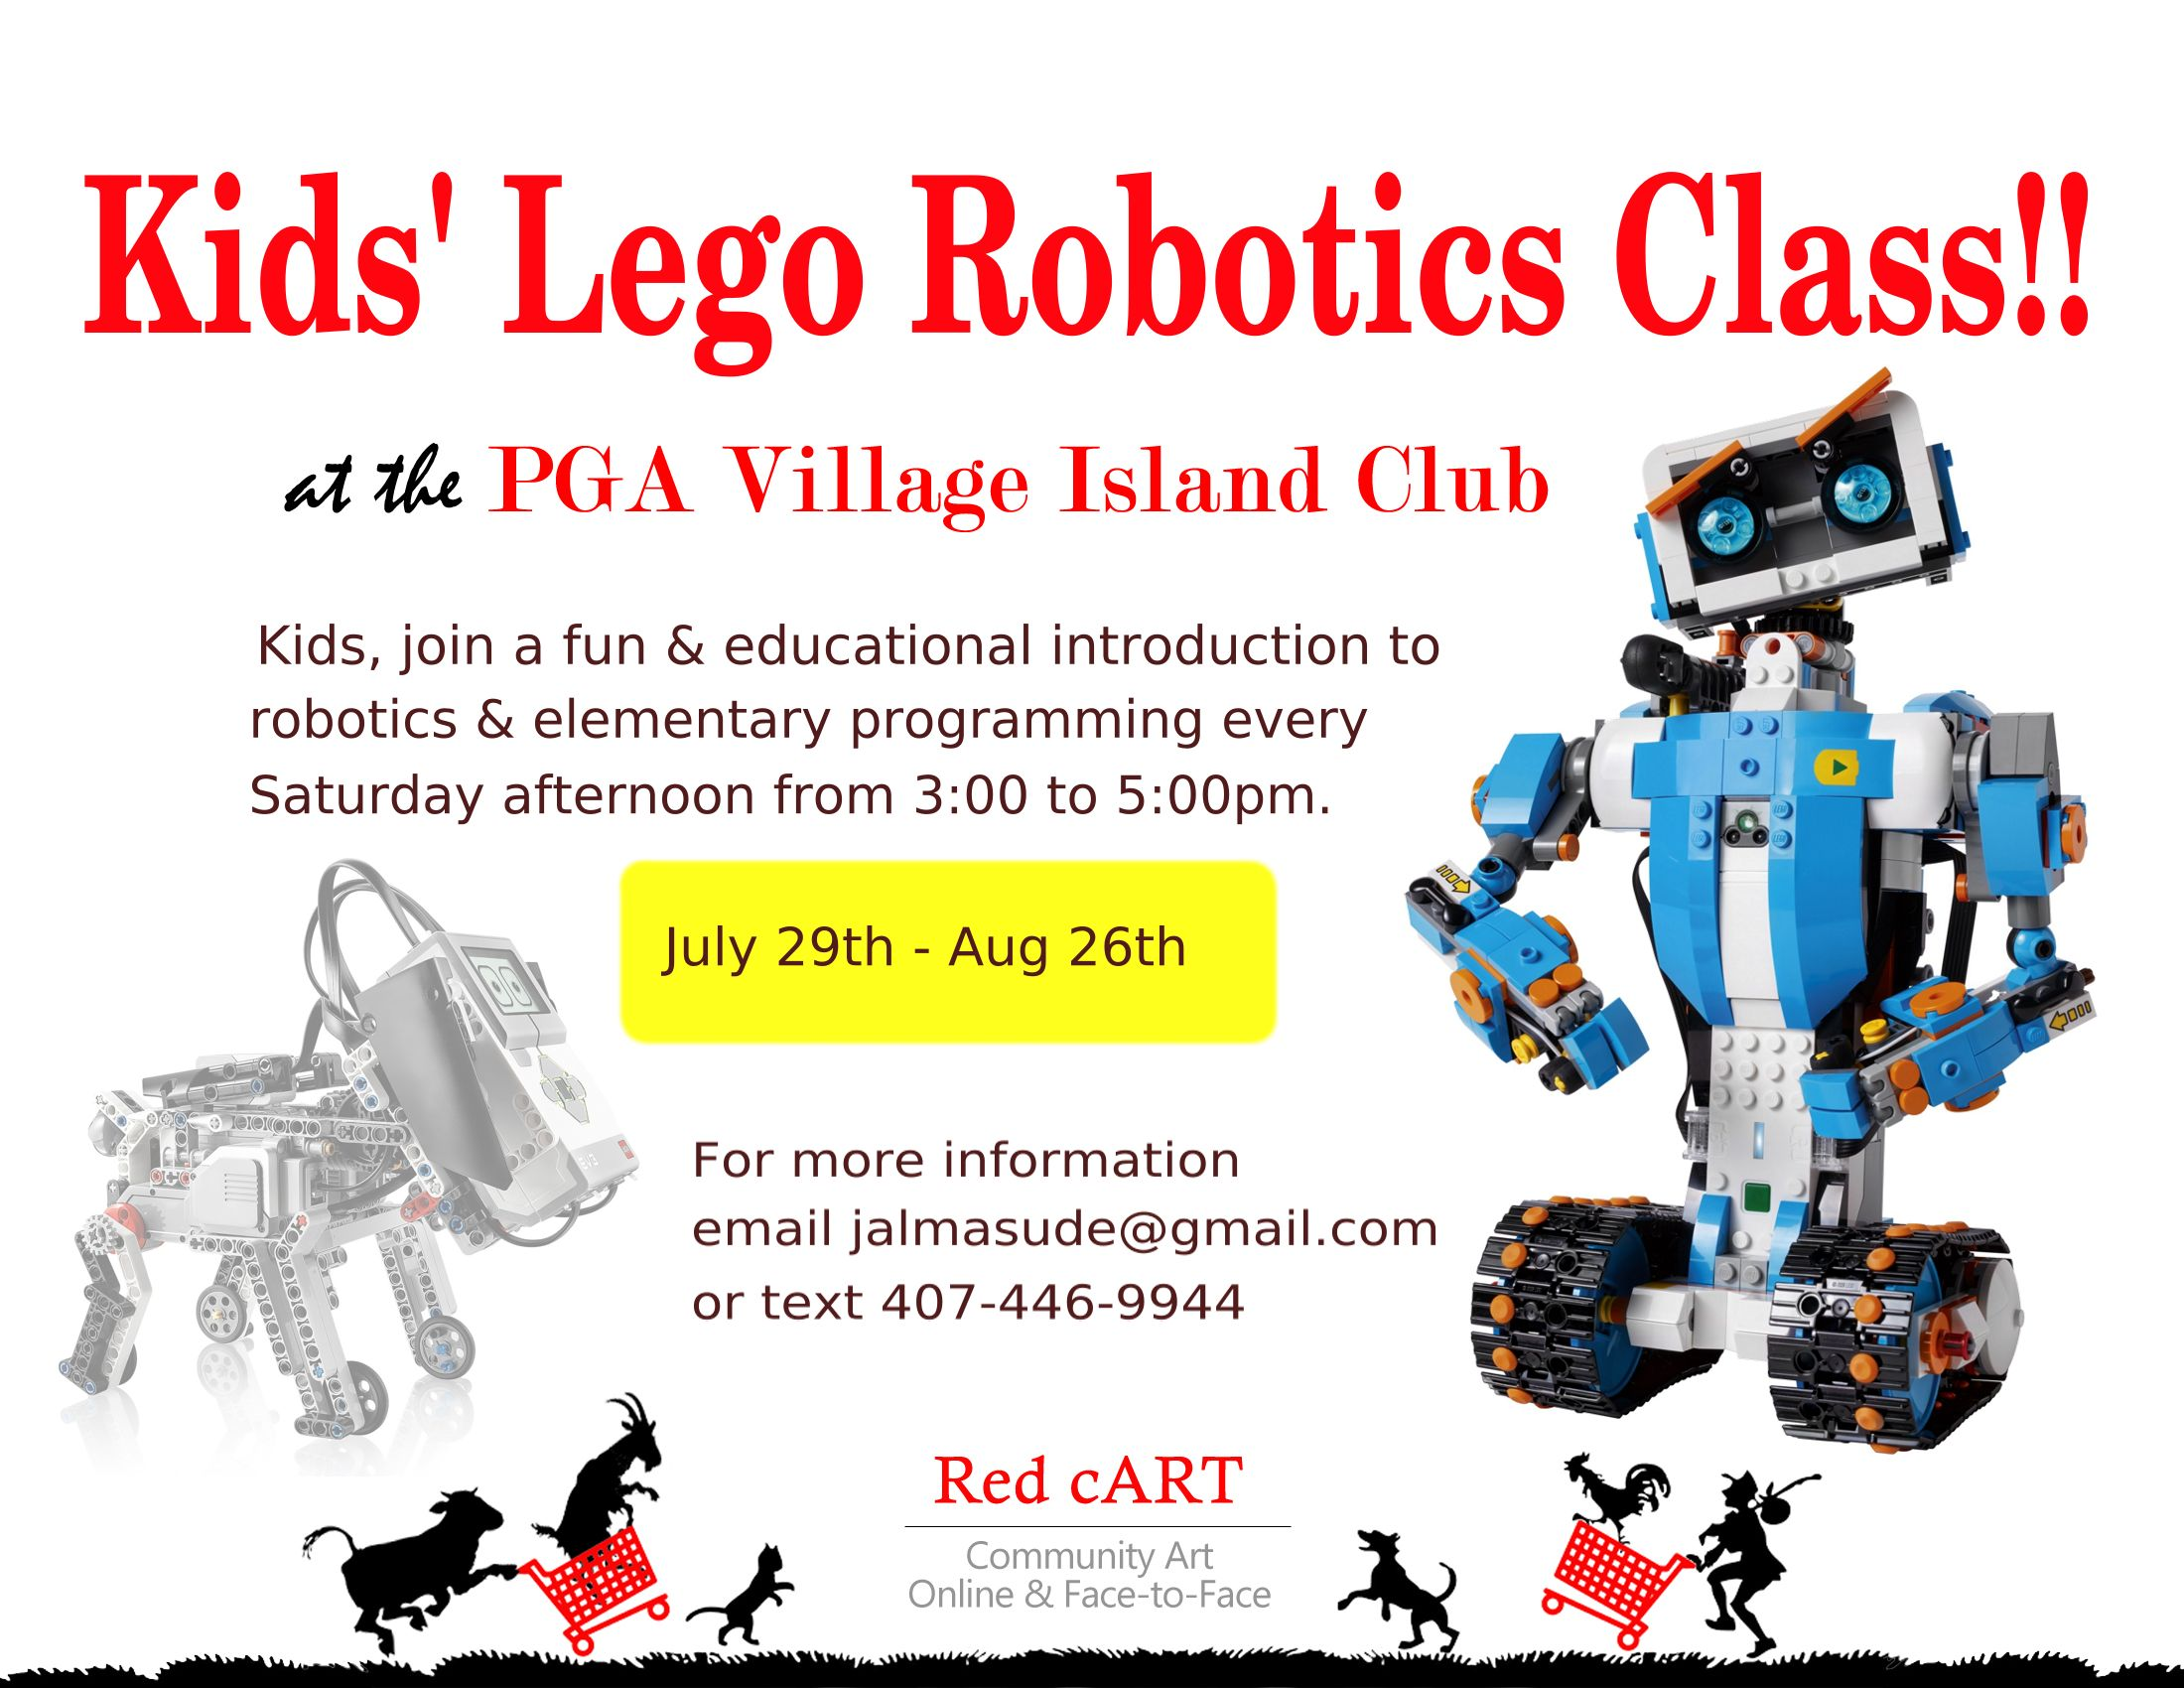 New Lego Robotics Class Is Starting July 29th Genius Institute For